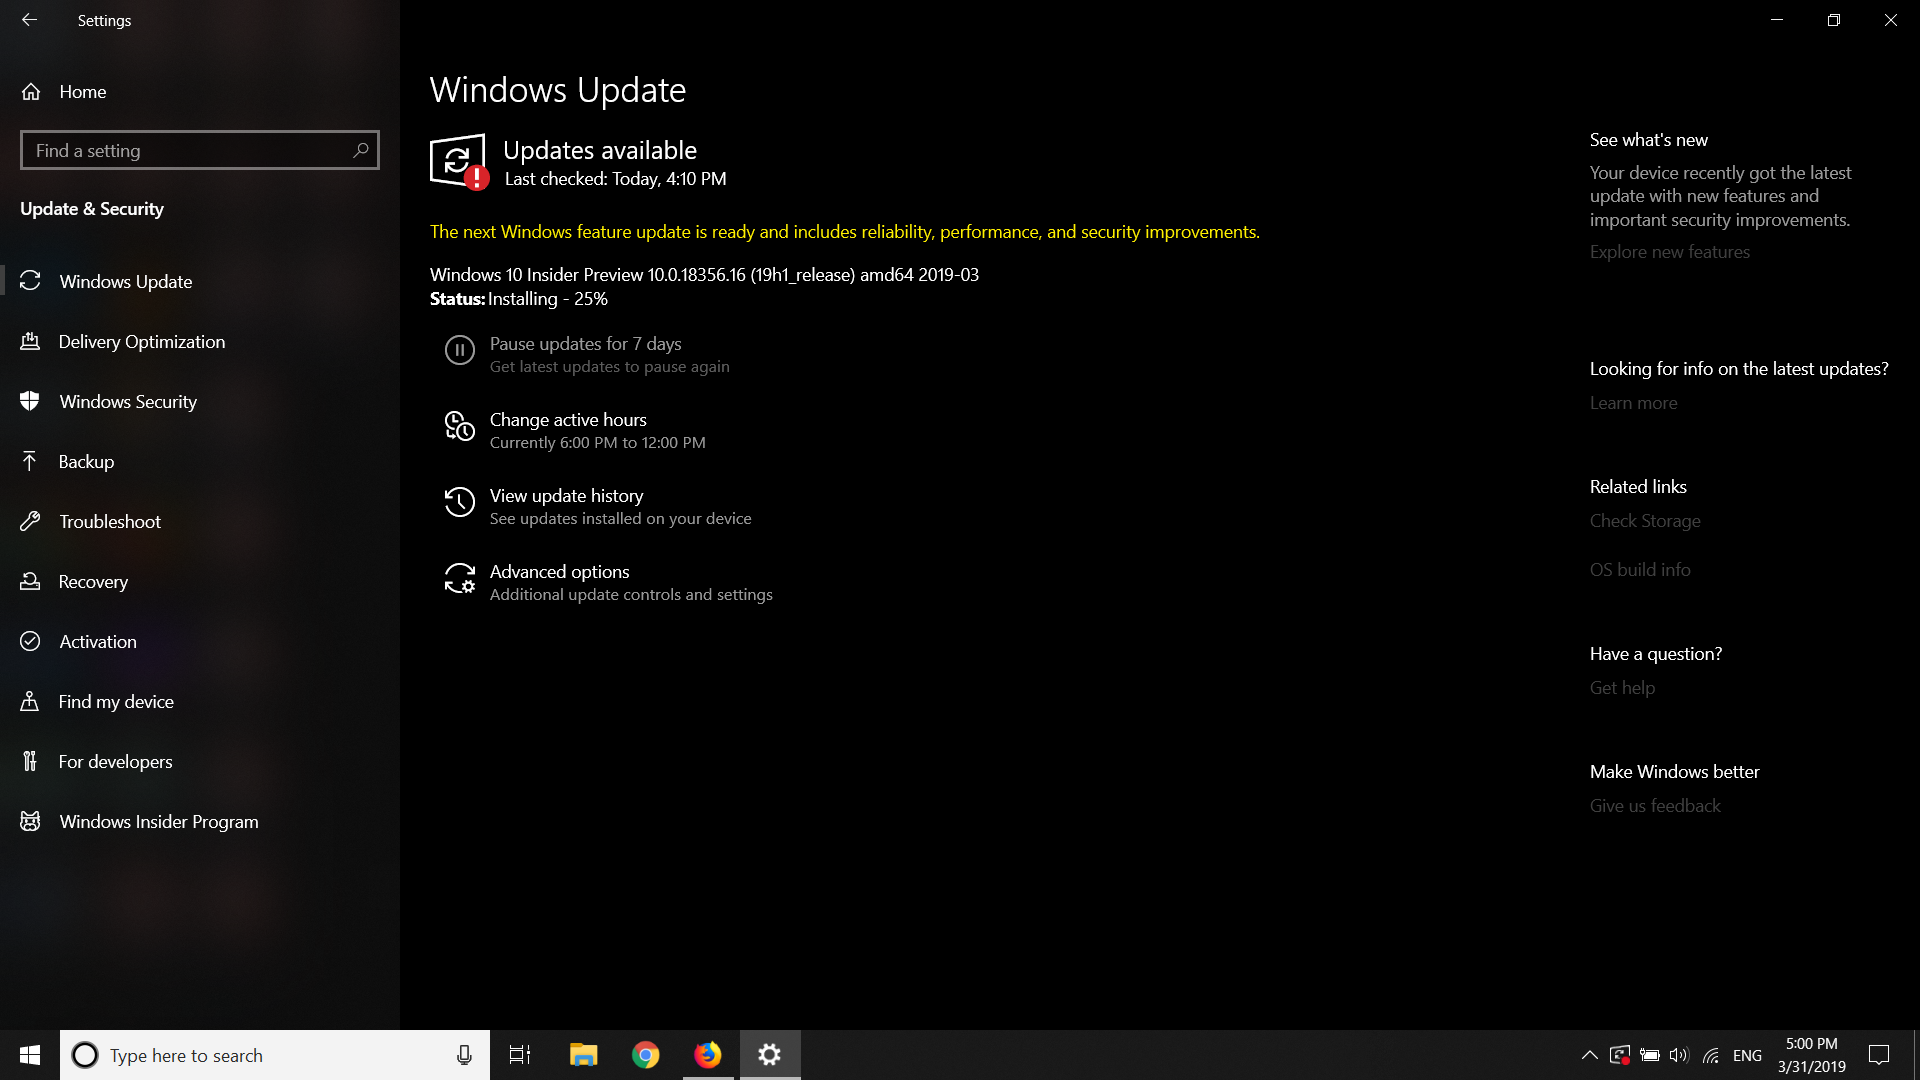 Windows insider 10 0 18356 16 (19h1_release) amd64 2019-03